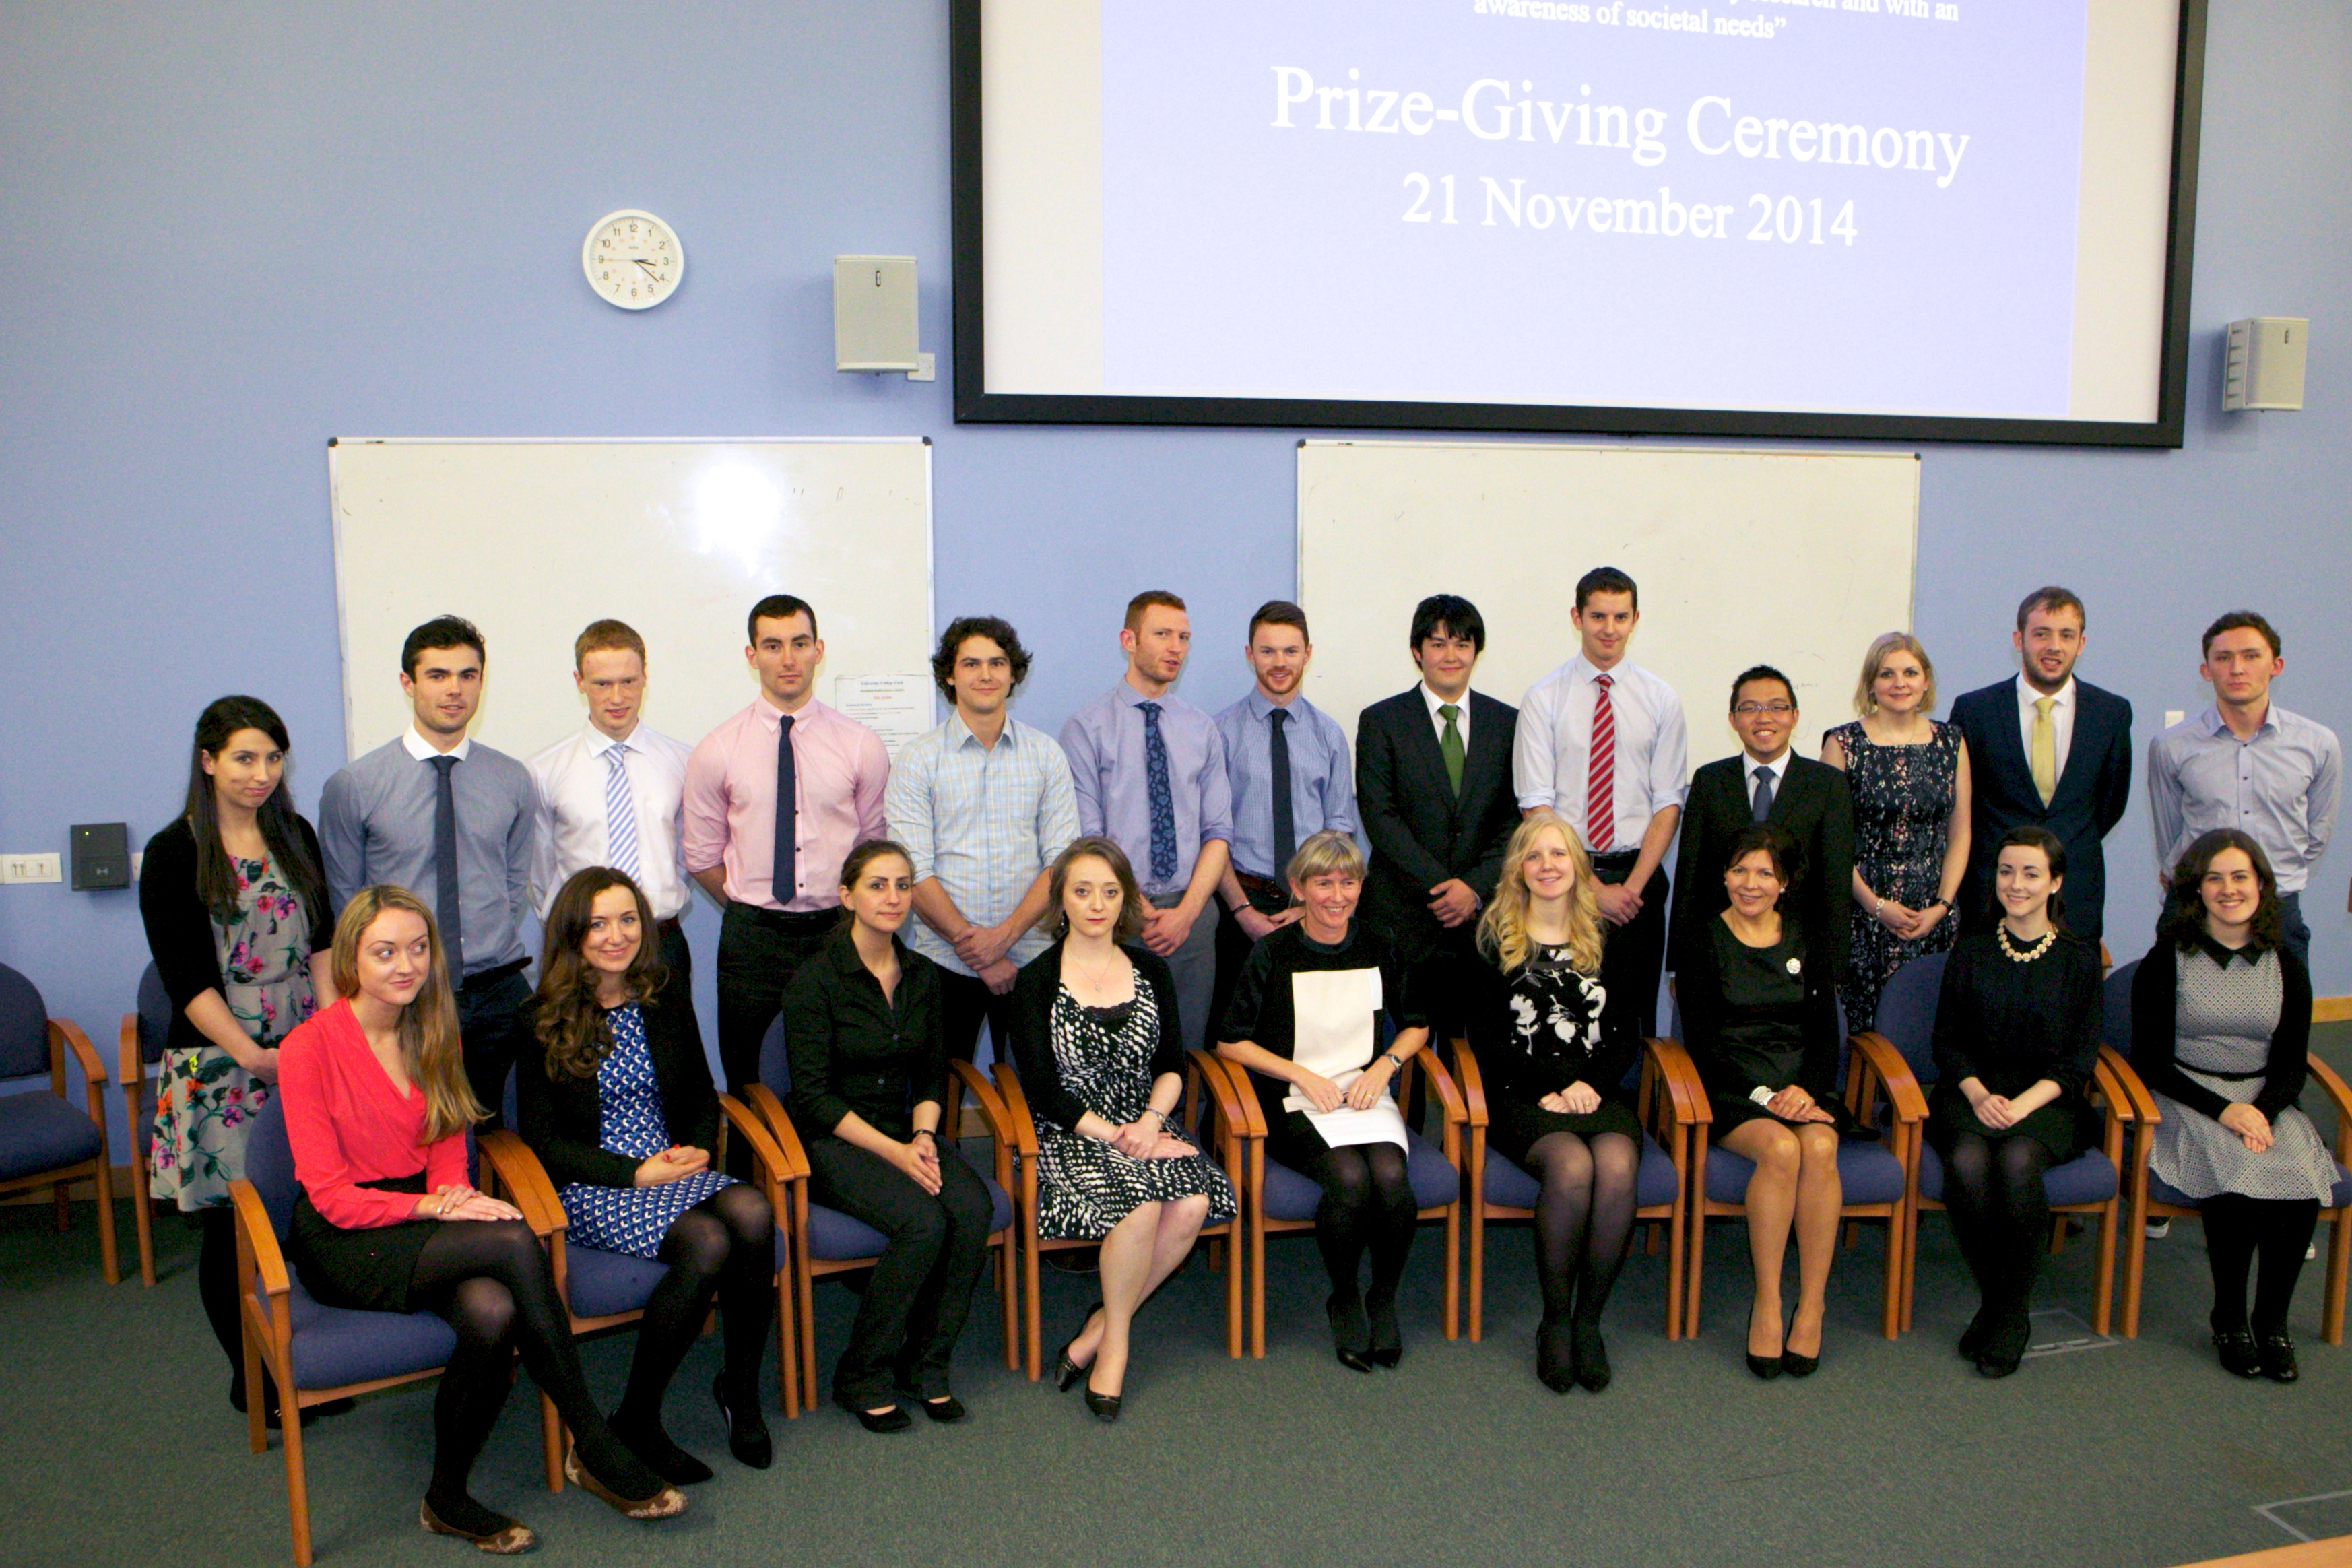 School of Medicine Prize-Giving Ceremony 2014